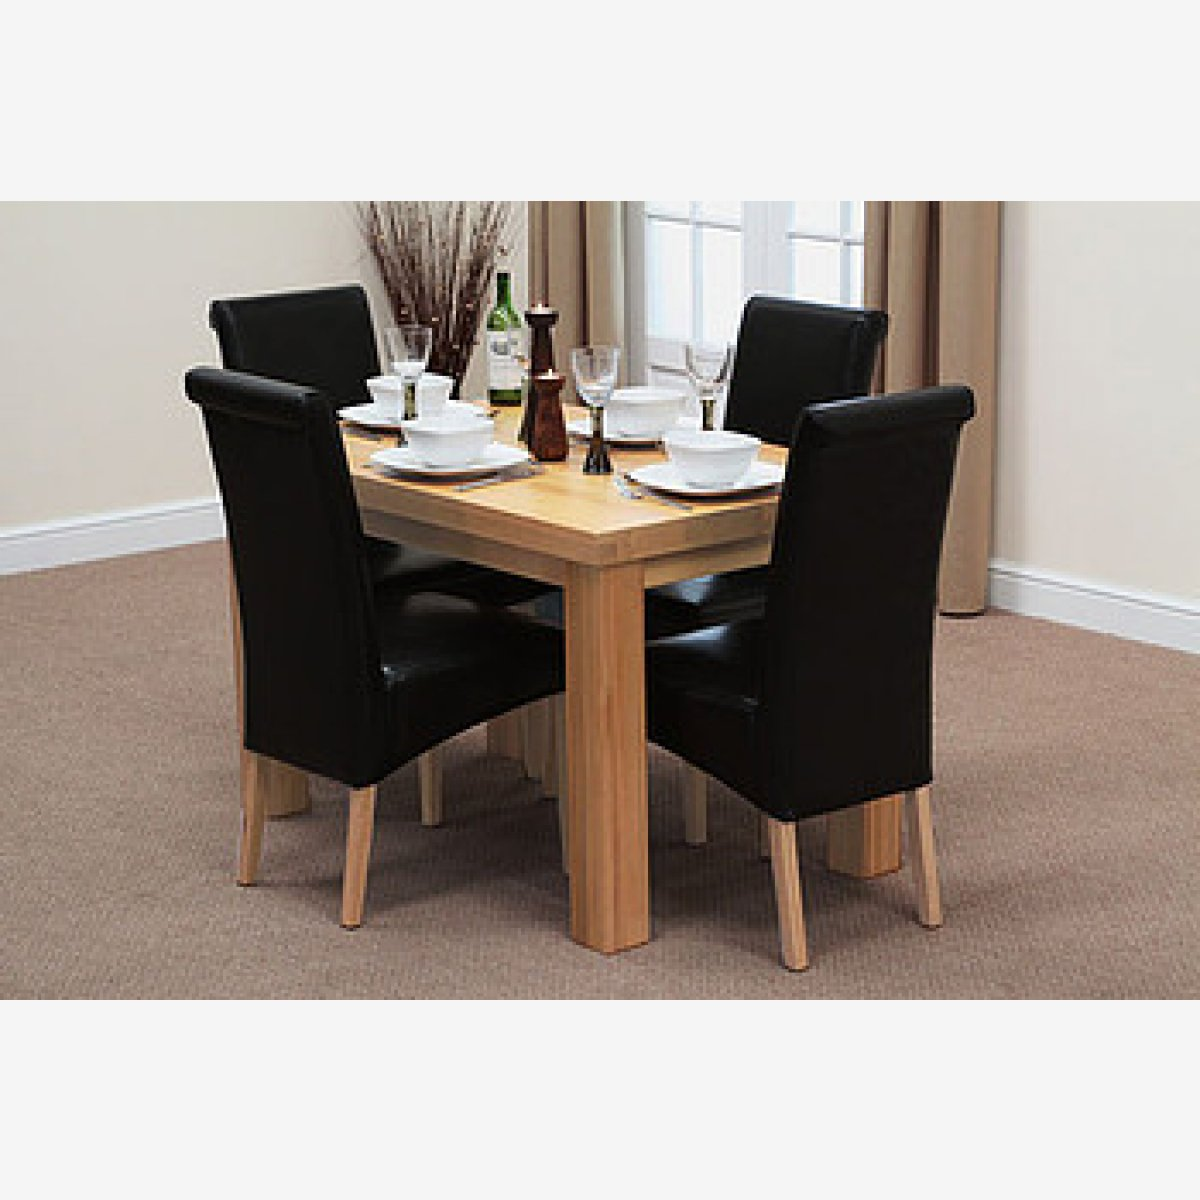 Fresco 4ft Solid Oak Dining Table + 4 Black Leather Chairs